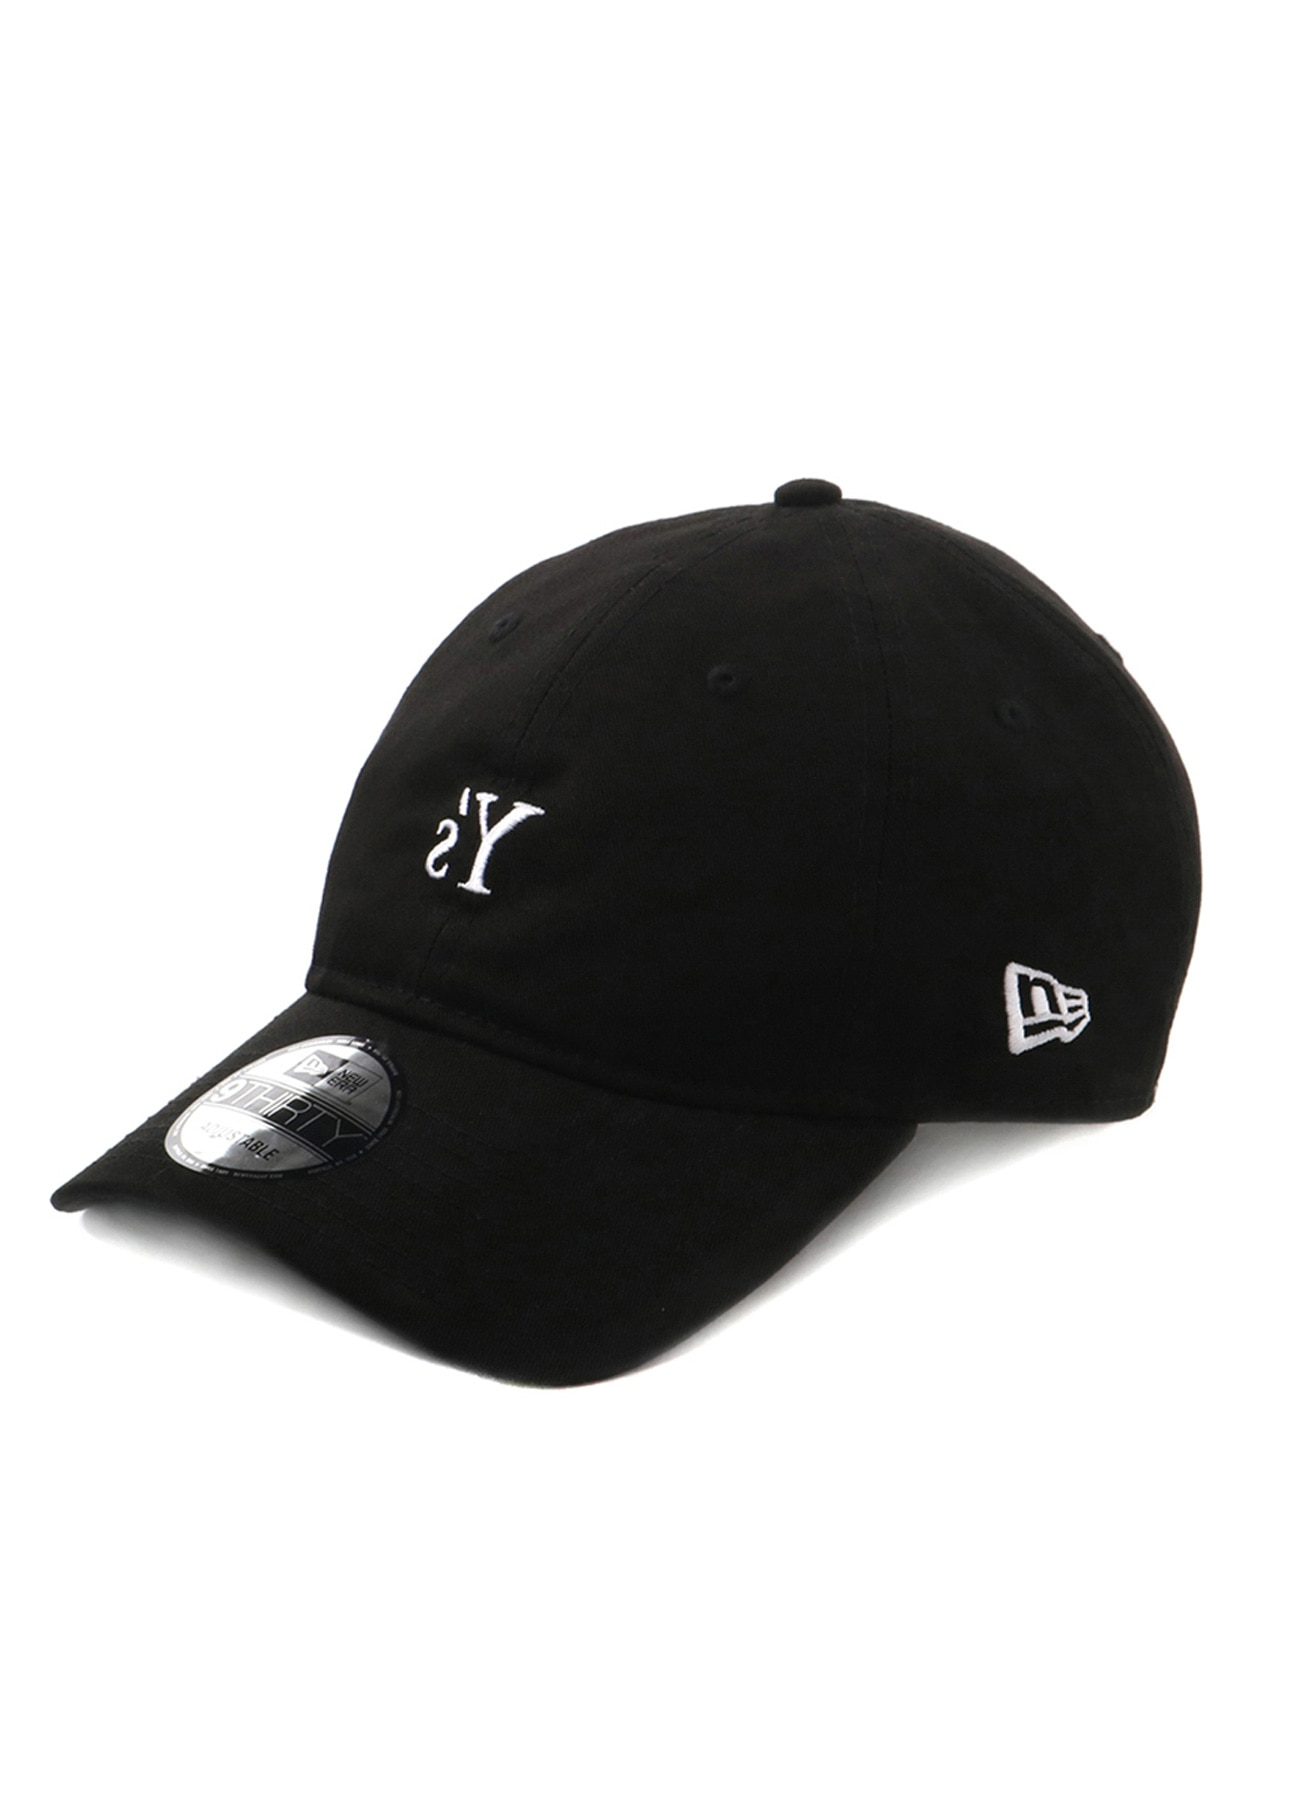 Y's × New Era 9THIRTY Y's OMOTESANDO EDITION